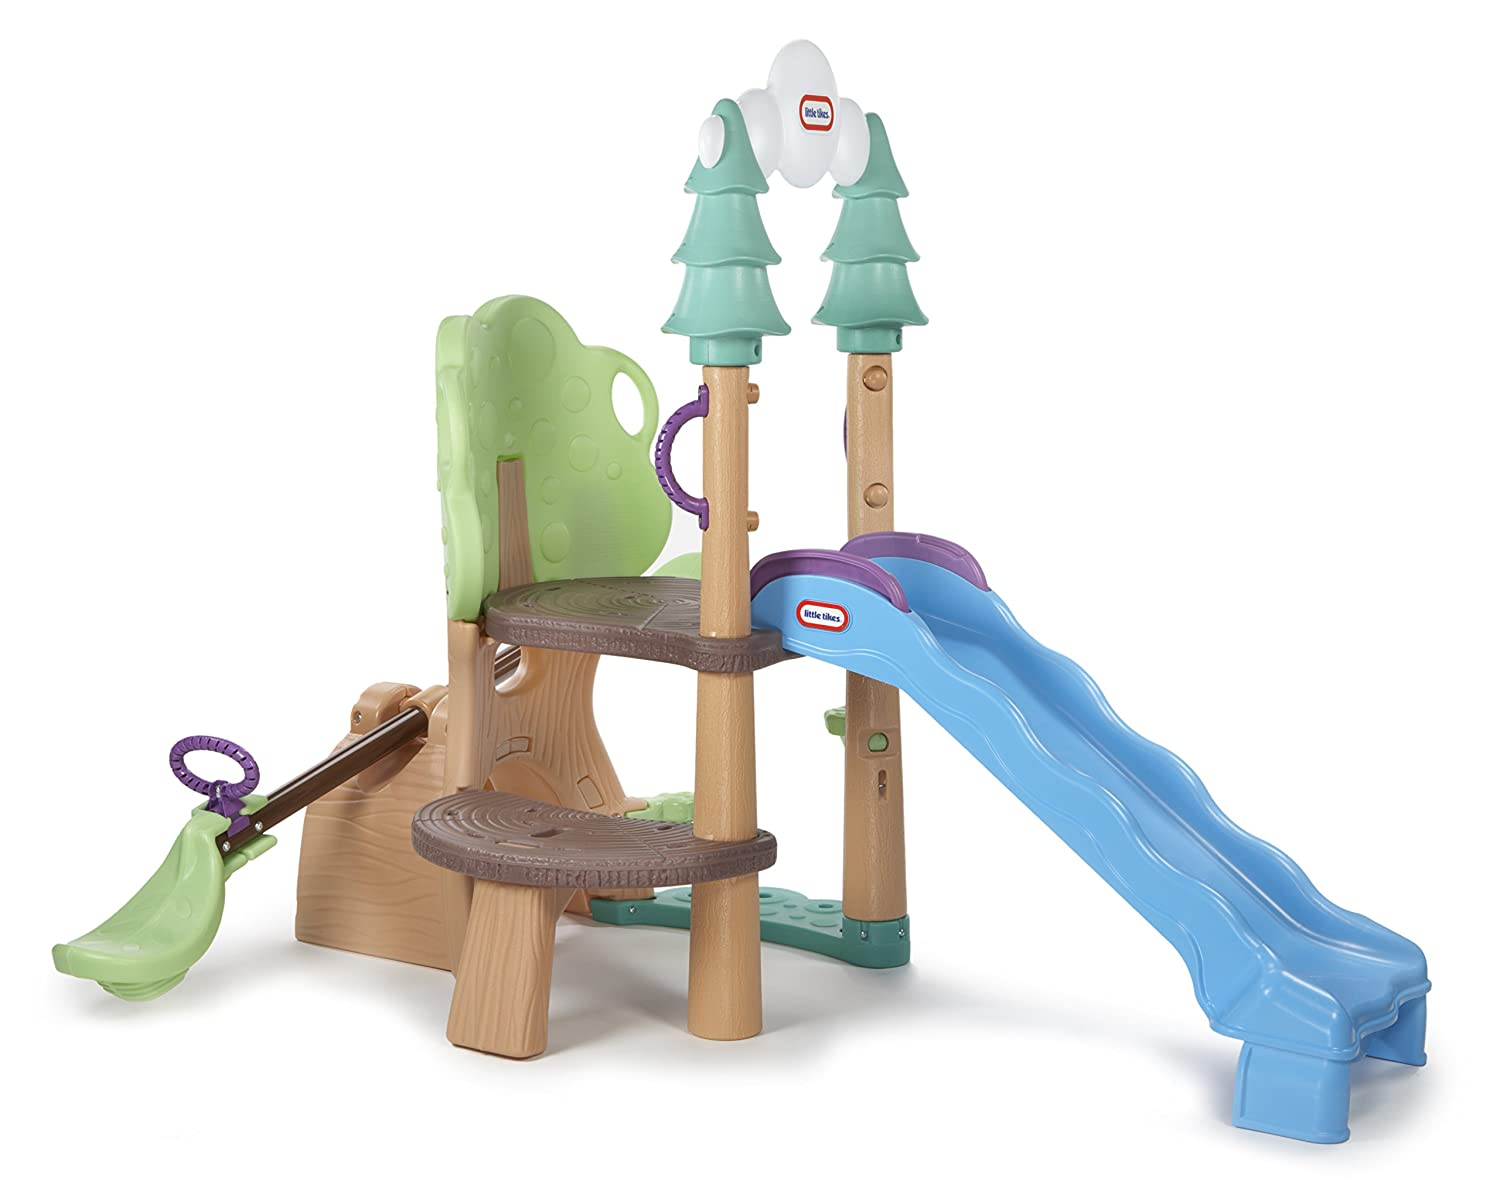 Amazon.com: Little Tikes 1,2,3 Climber, See Saw & Slide: Toys & Games